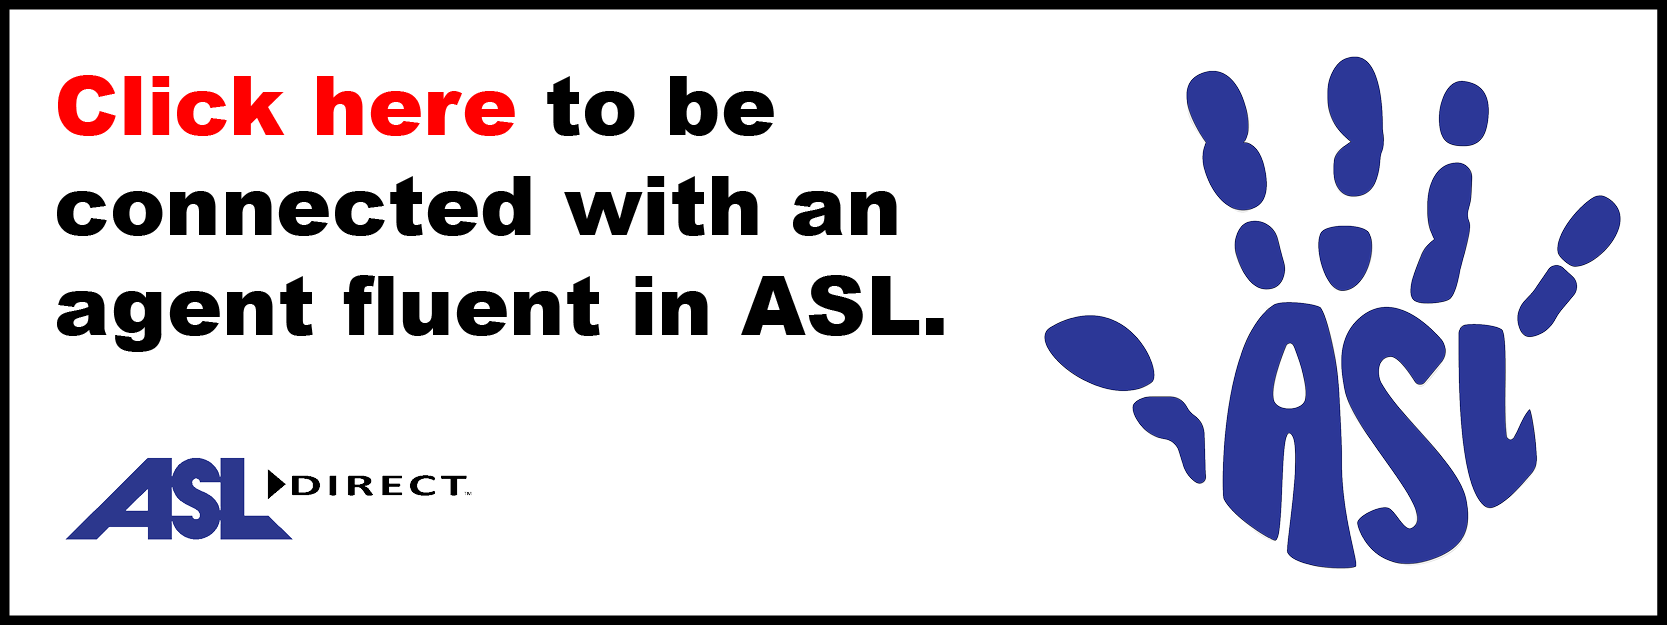 To be connected with an agent fluent in ASL, please follow this hyperlink